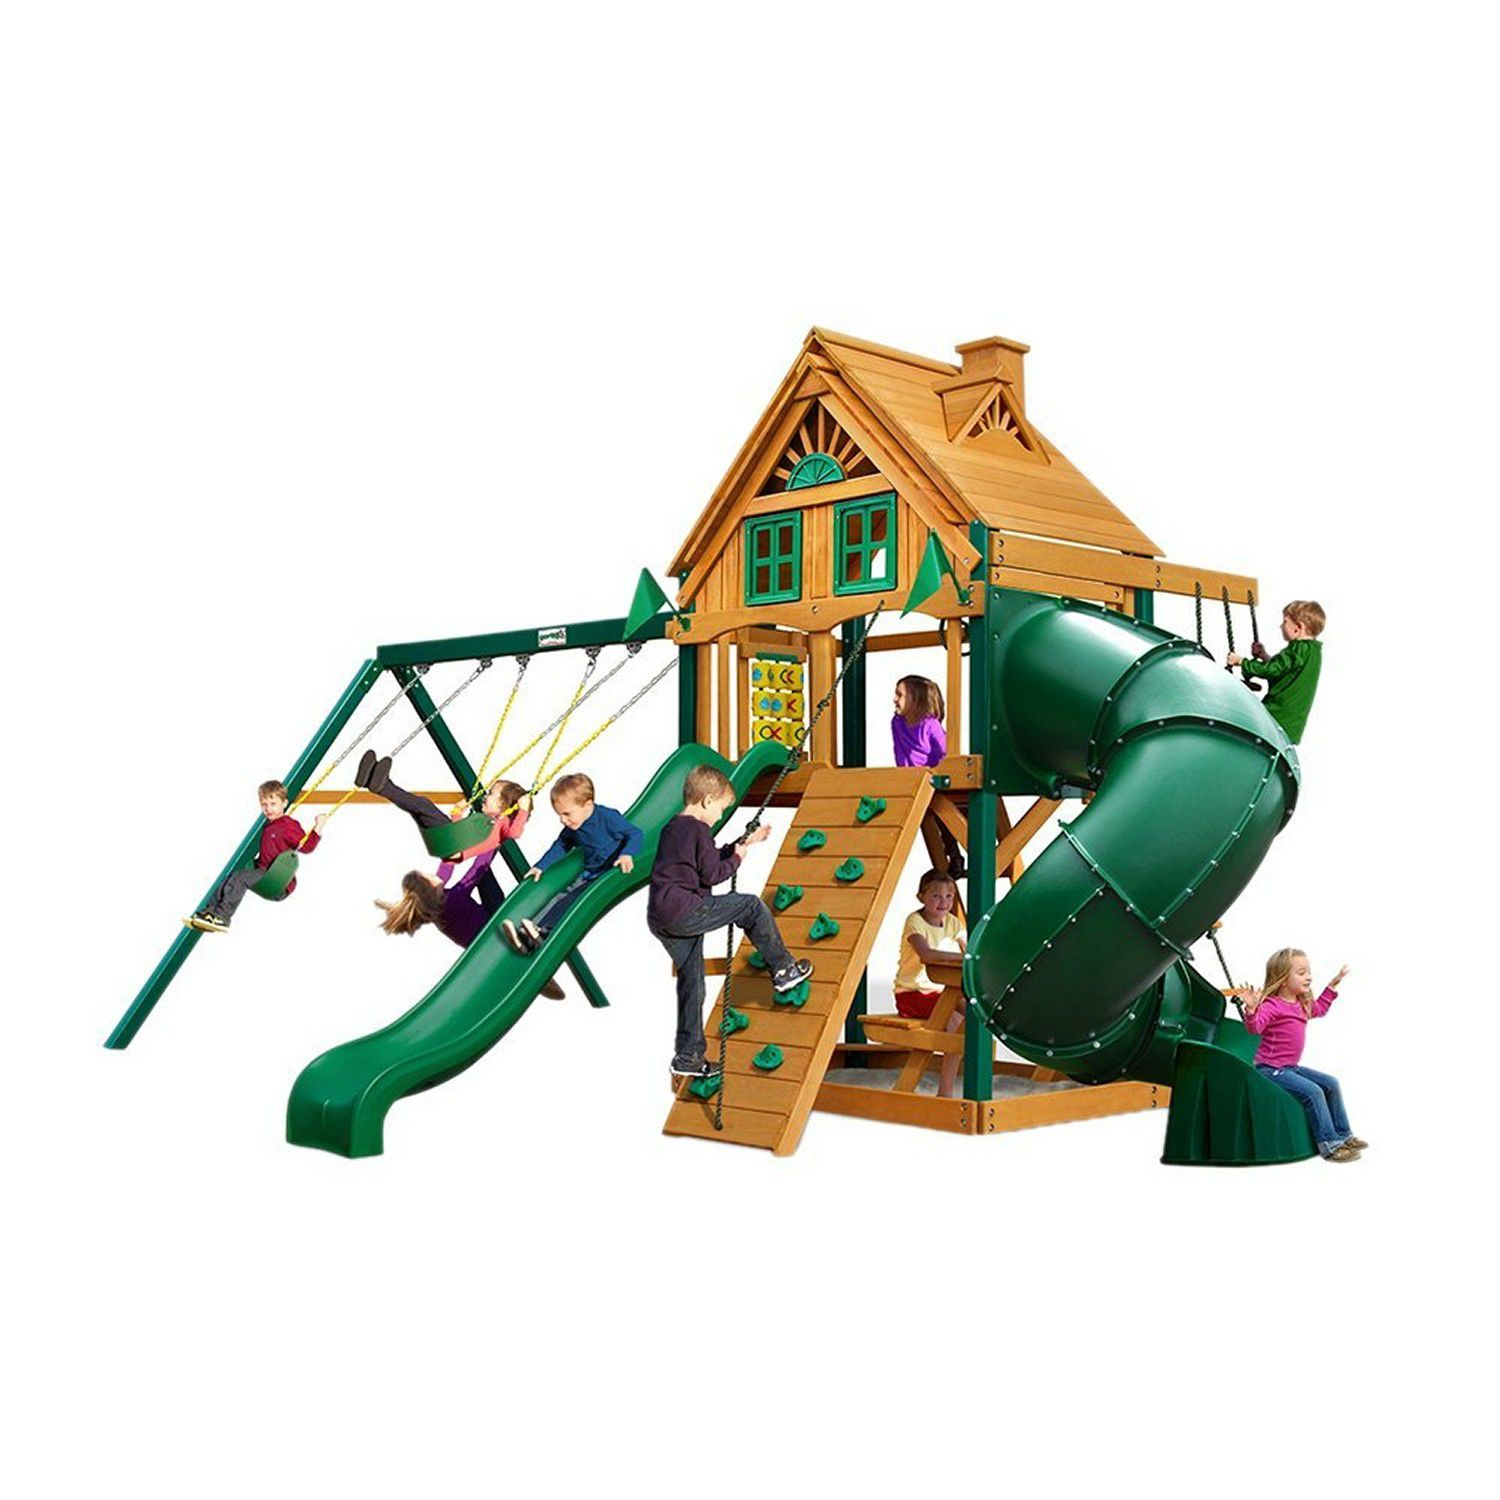 A picture of the Gorilla Playsets Mountaineer Wooden Swing and Play Set - The 8 Best Wooden Swing Sets And Playsets To Buy In 2018